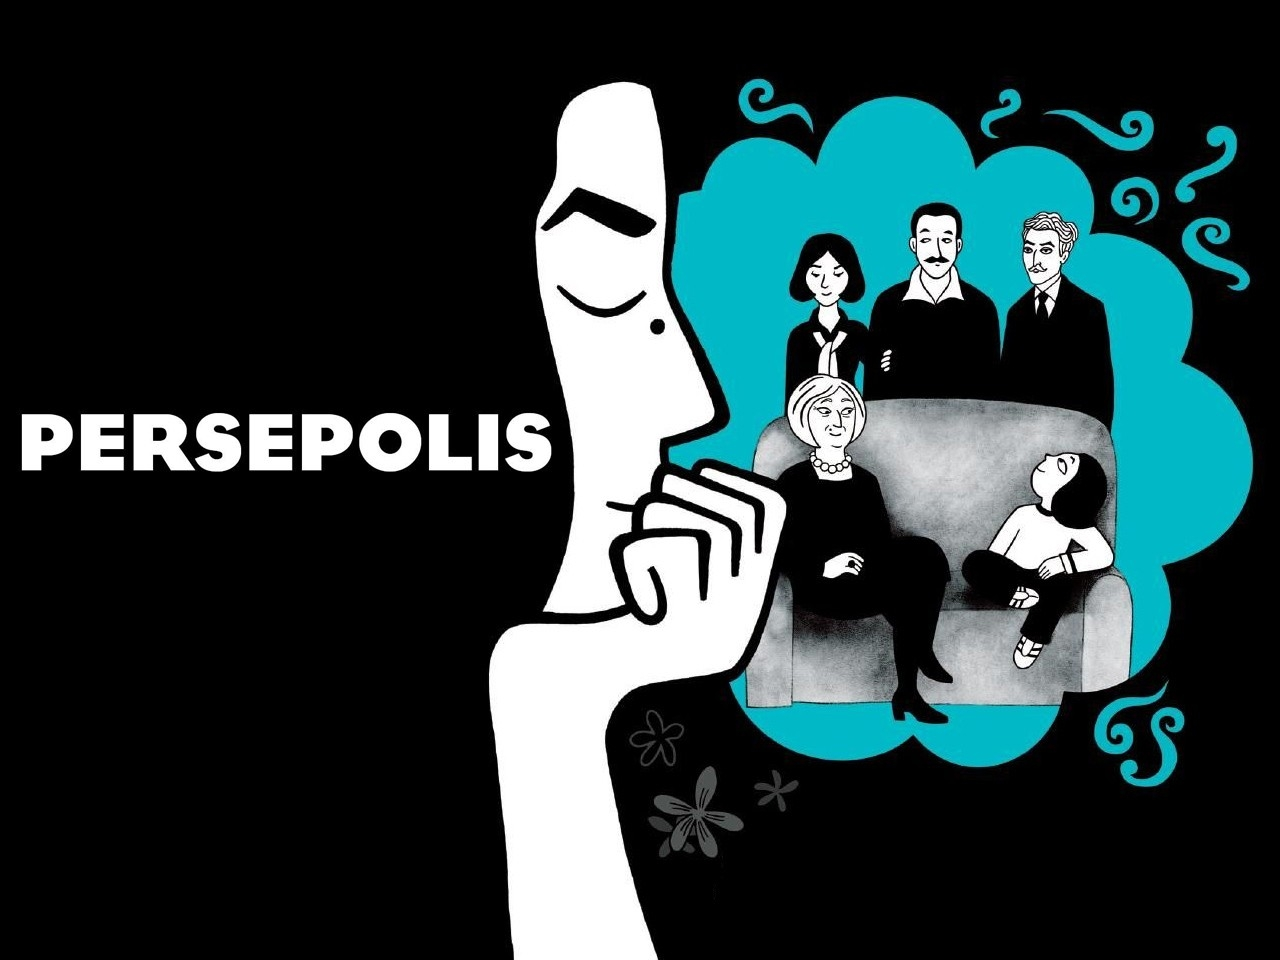 Persepolis Wallpaper and Background Image 1280x960 ID186740 1280x960